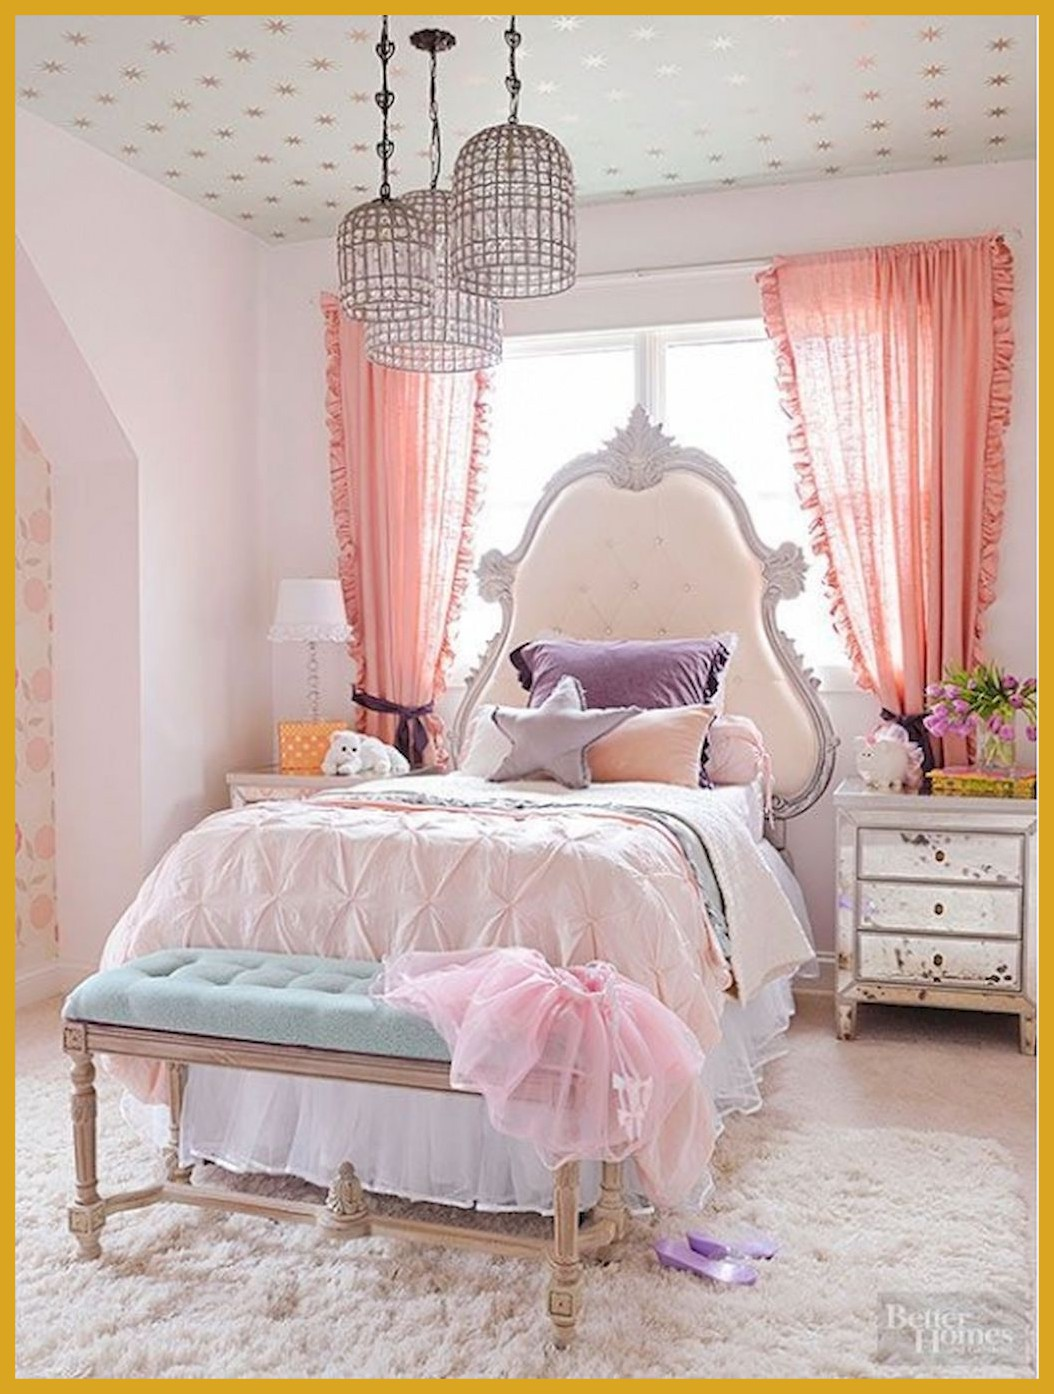 marvelous-nice-pretty-unicorn-bedroom-ideas-for-kid-rooms-https-picture-decor-concept-and-bathroom-decorations-inspiration-1533698744343856595033